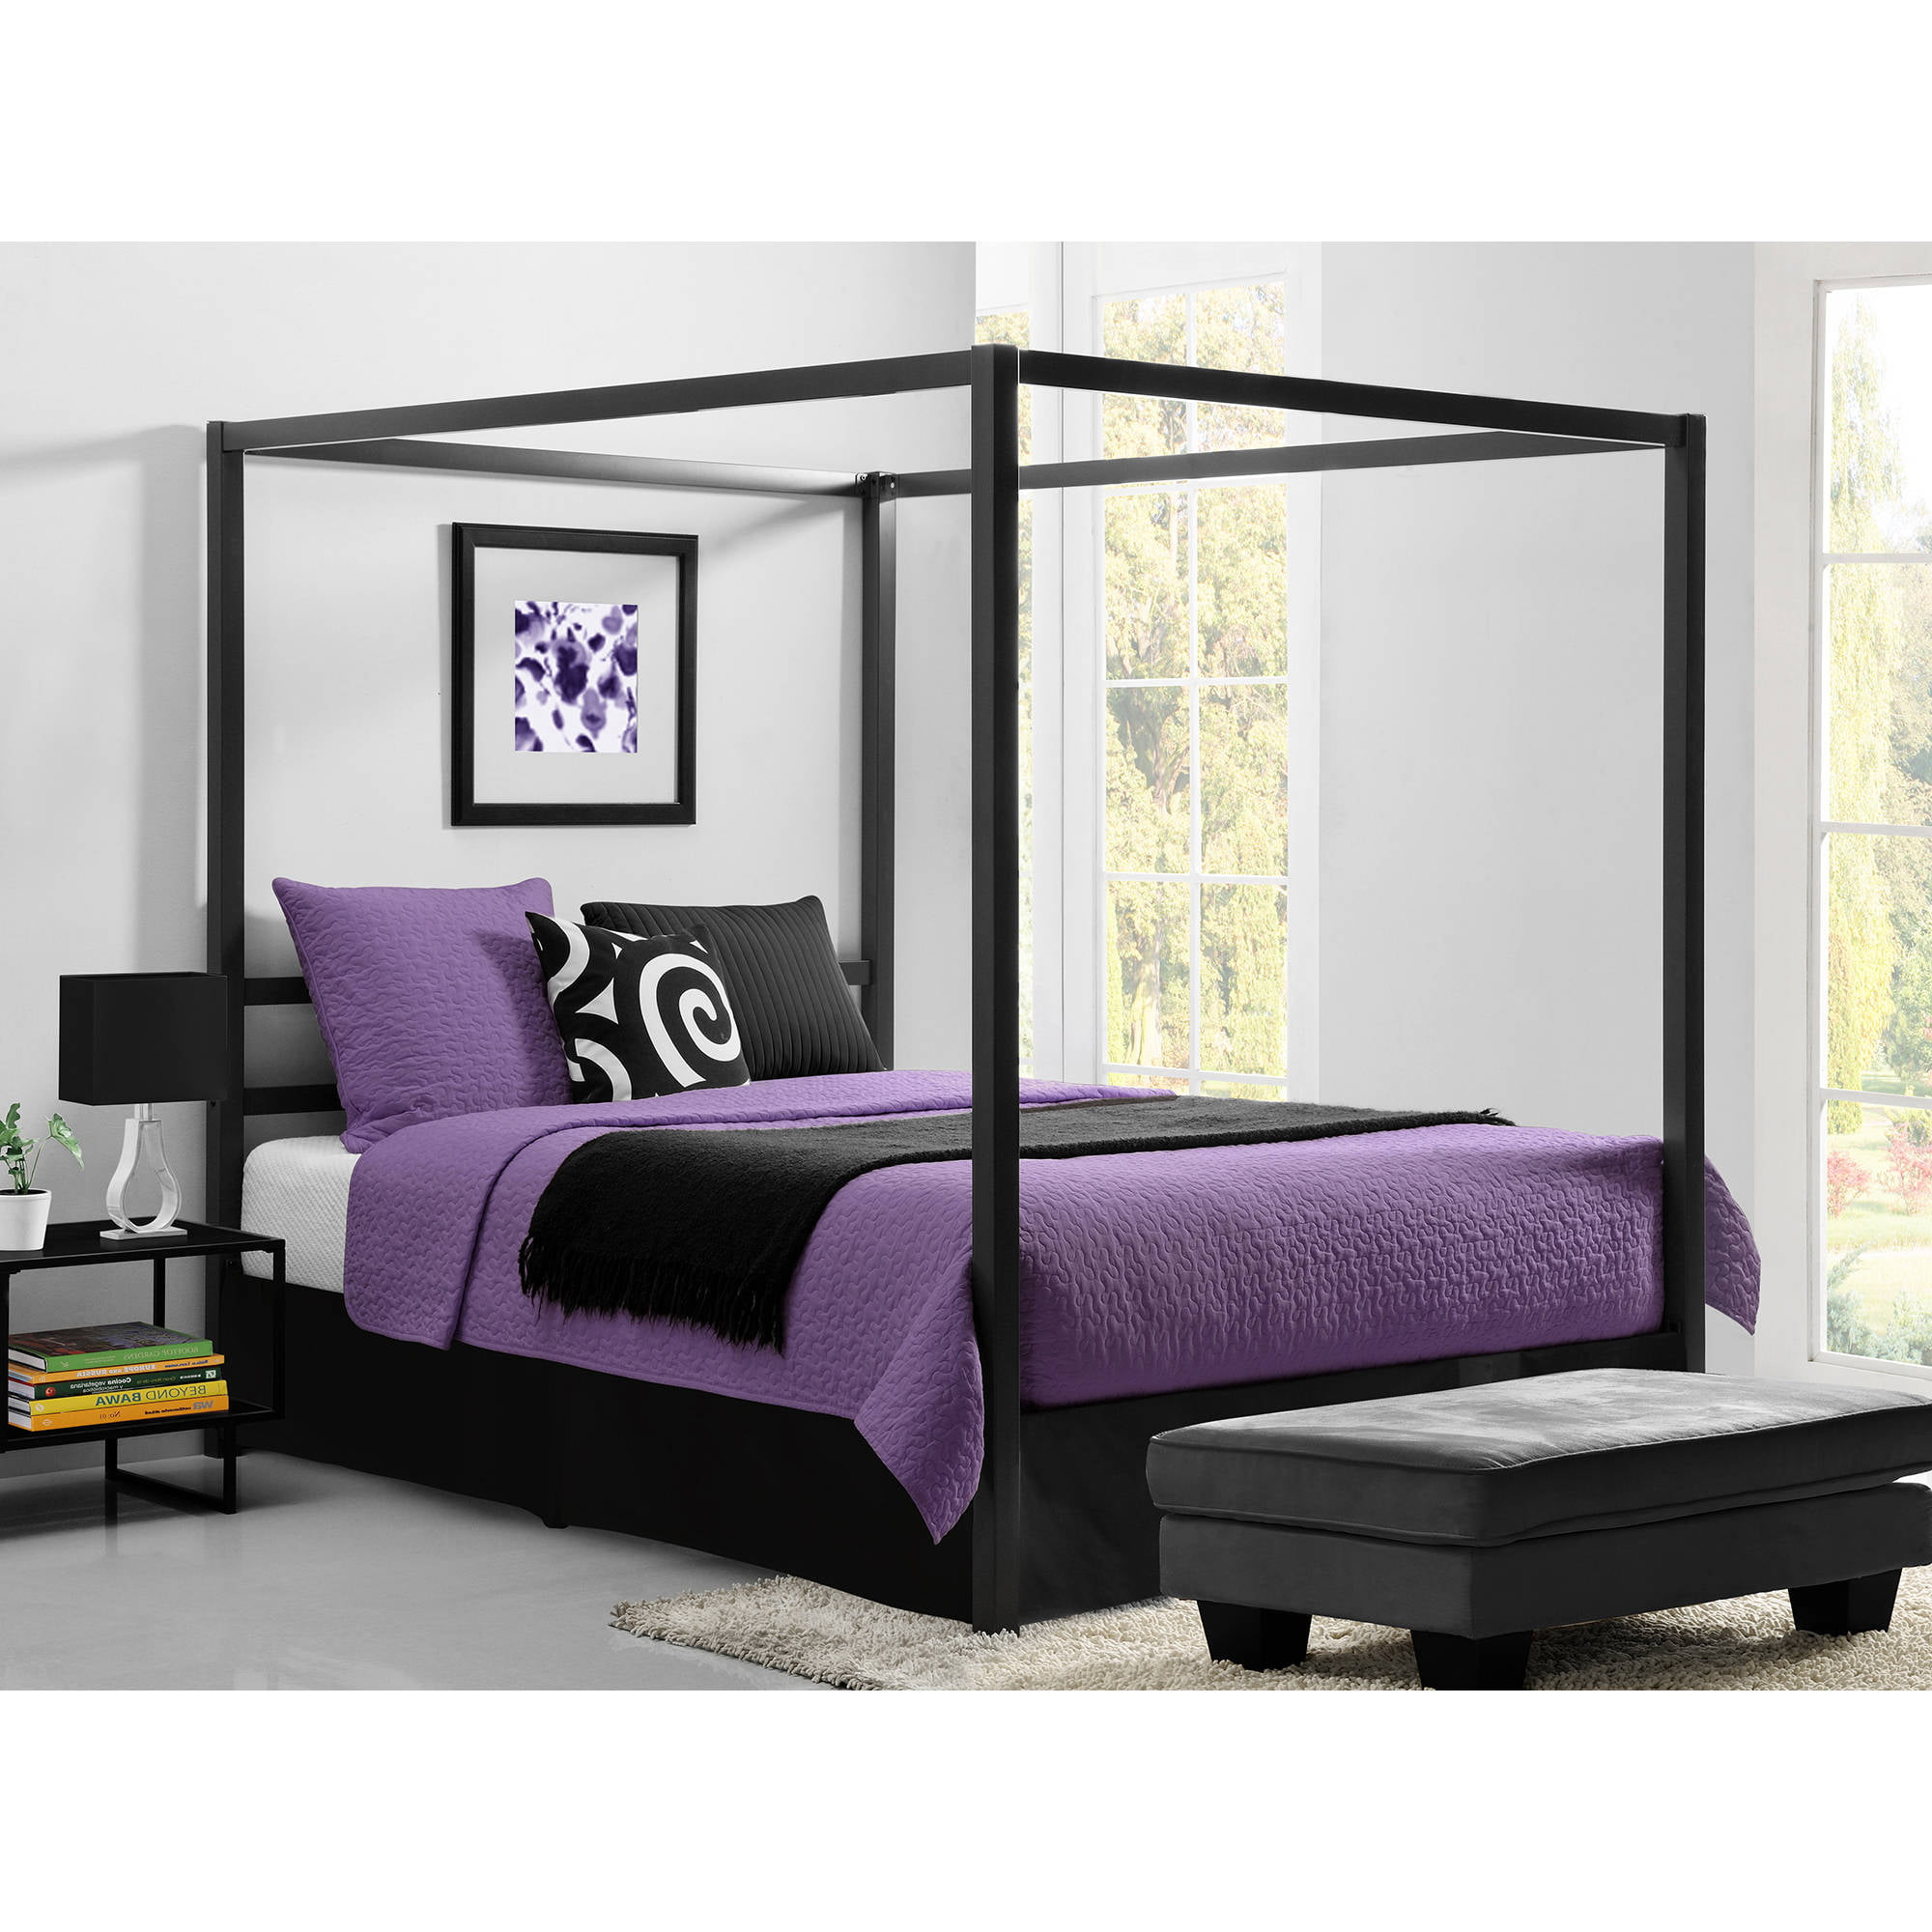 Dorel Modern Canopy Queen Metal Bed, Multiple Colors - Walmart.com